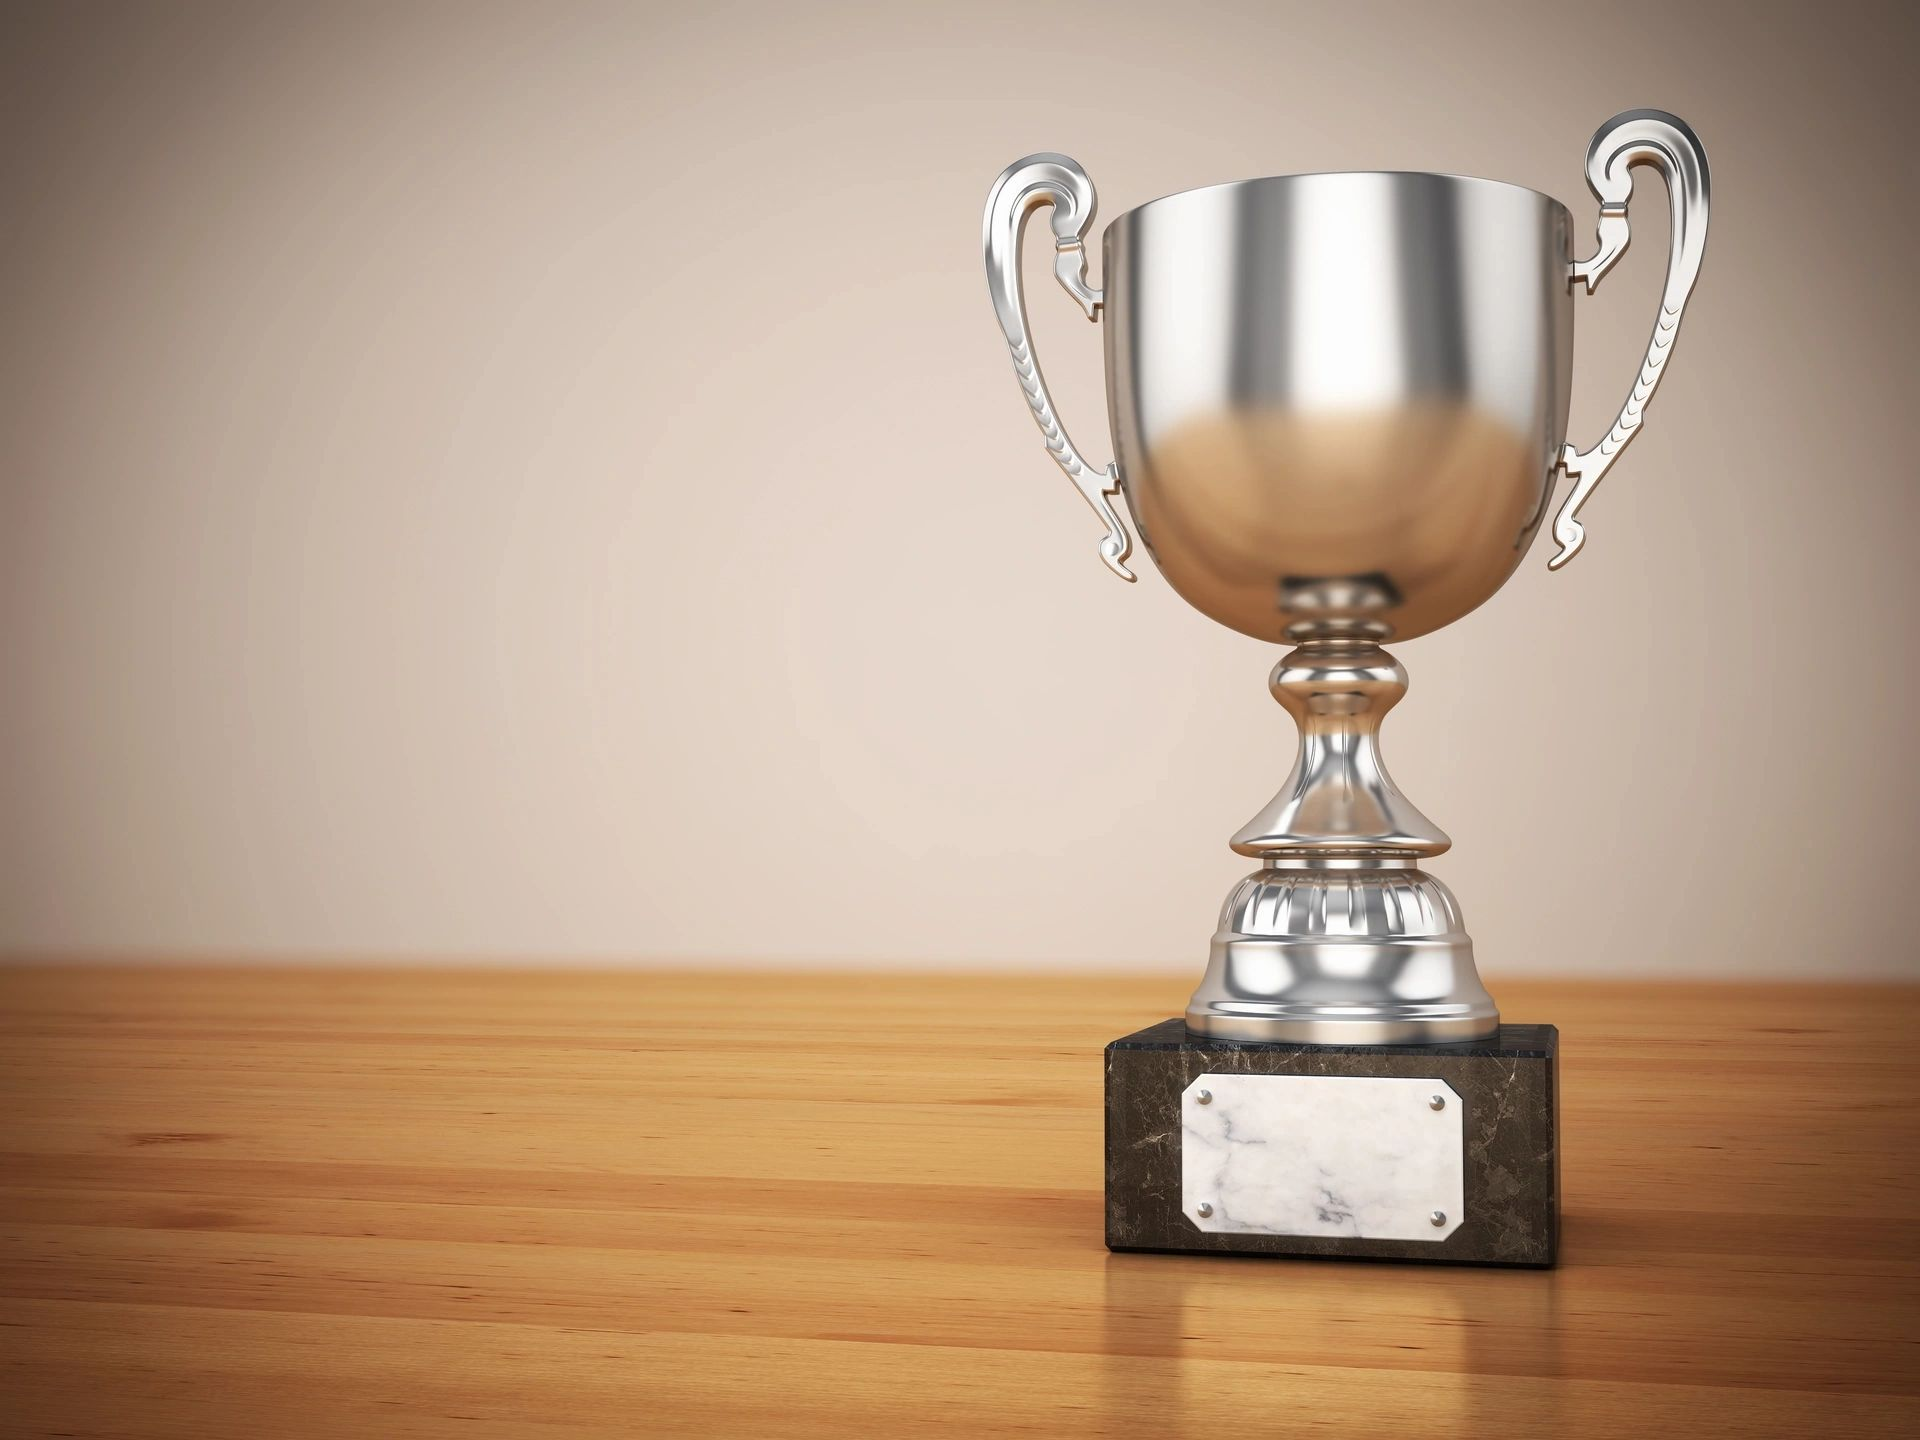 Silver trophy cup on woodgrain desktop